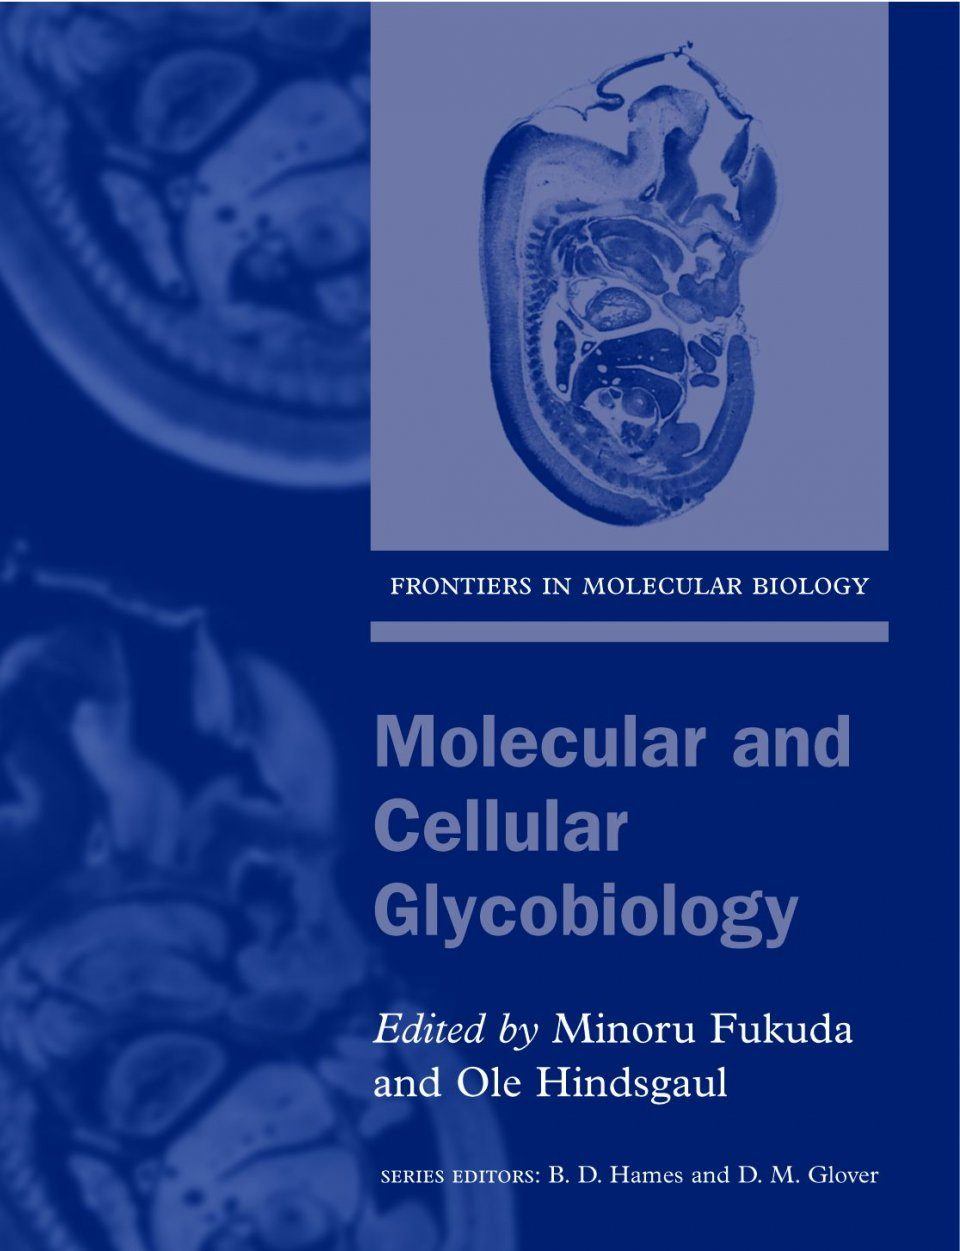 Molecular and Cellular Glycobiology